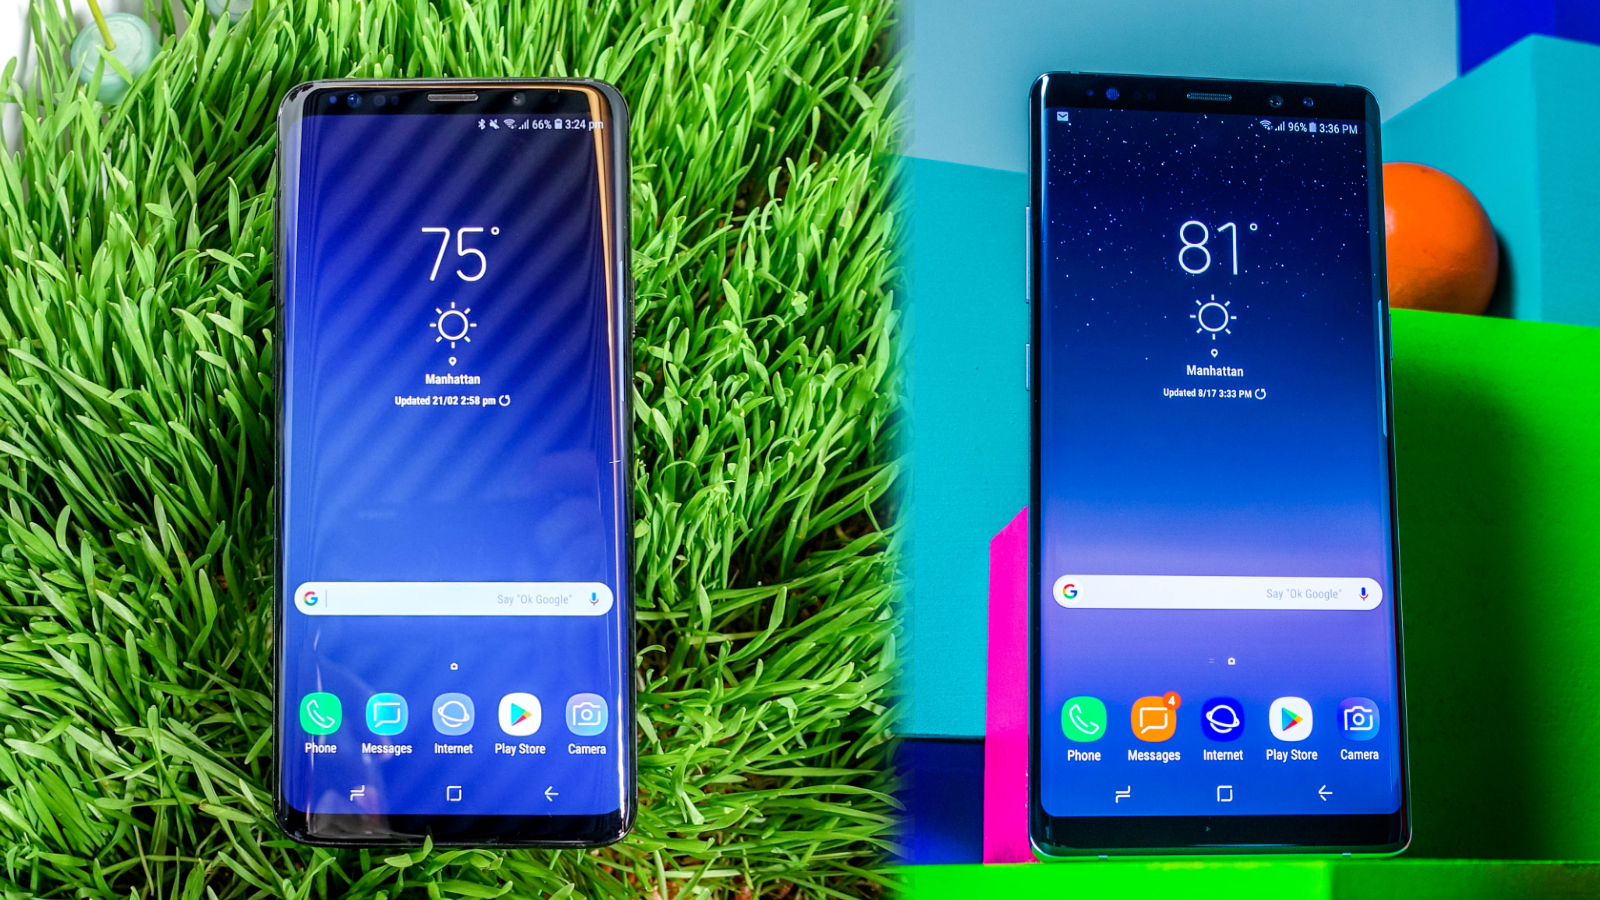 Samsung Galaxy S9 Plus Vs Samsung Galaxy Note 8 Techradar